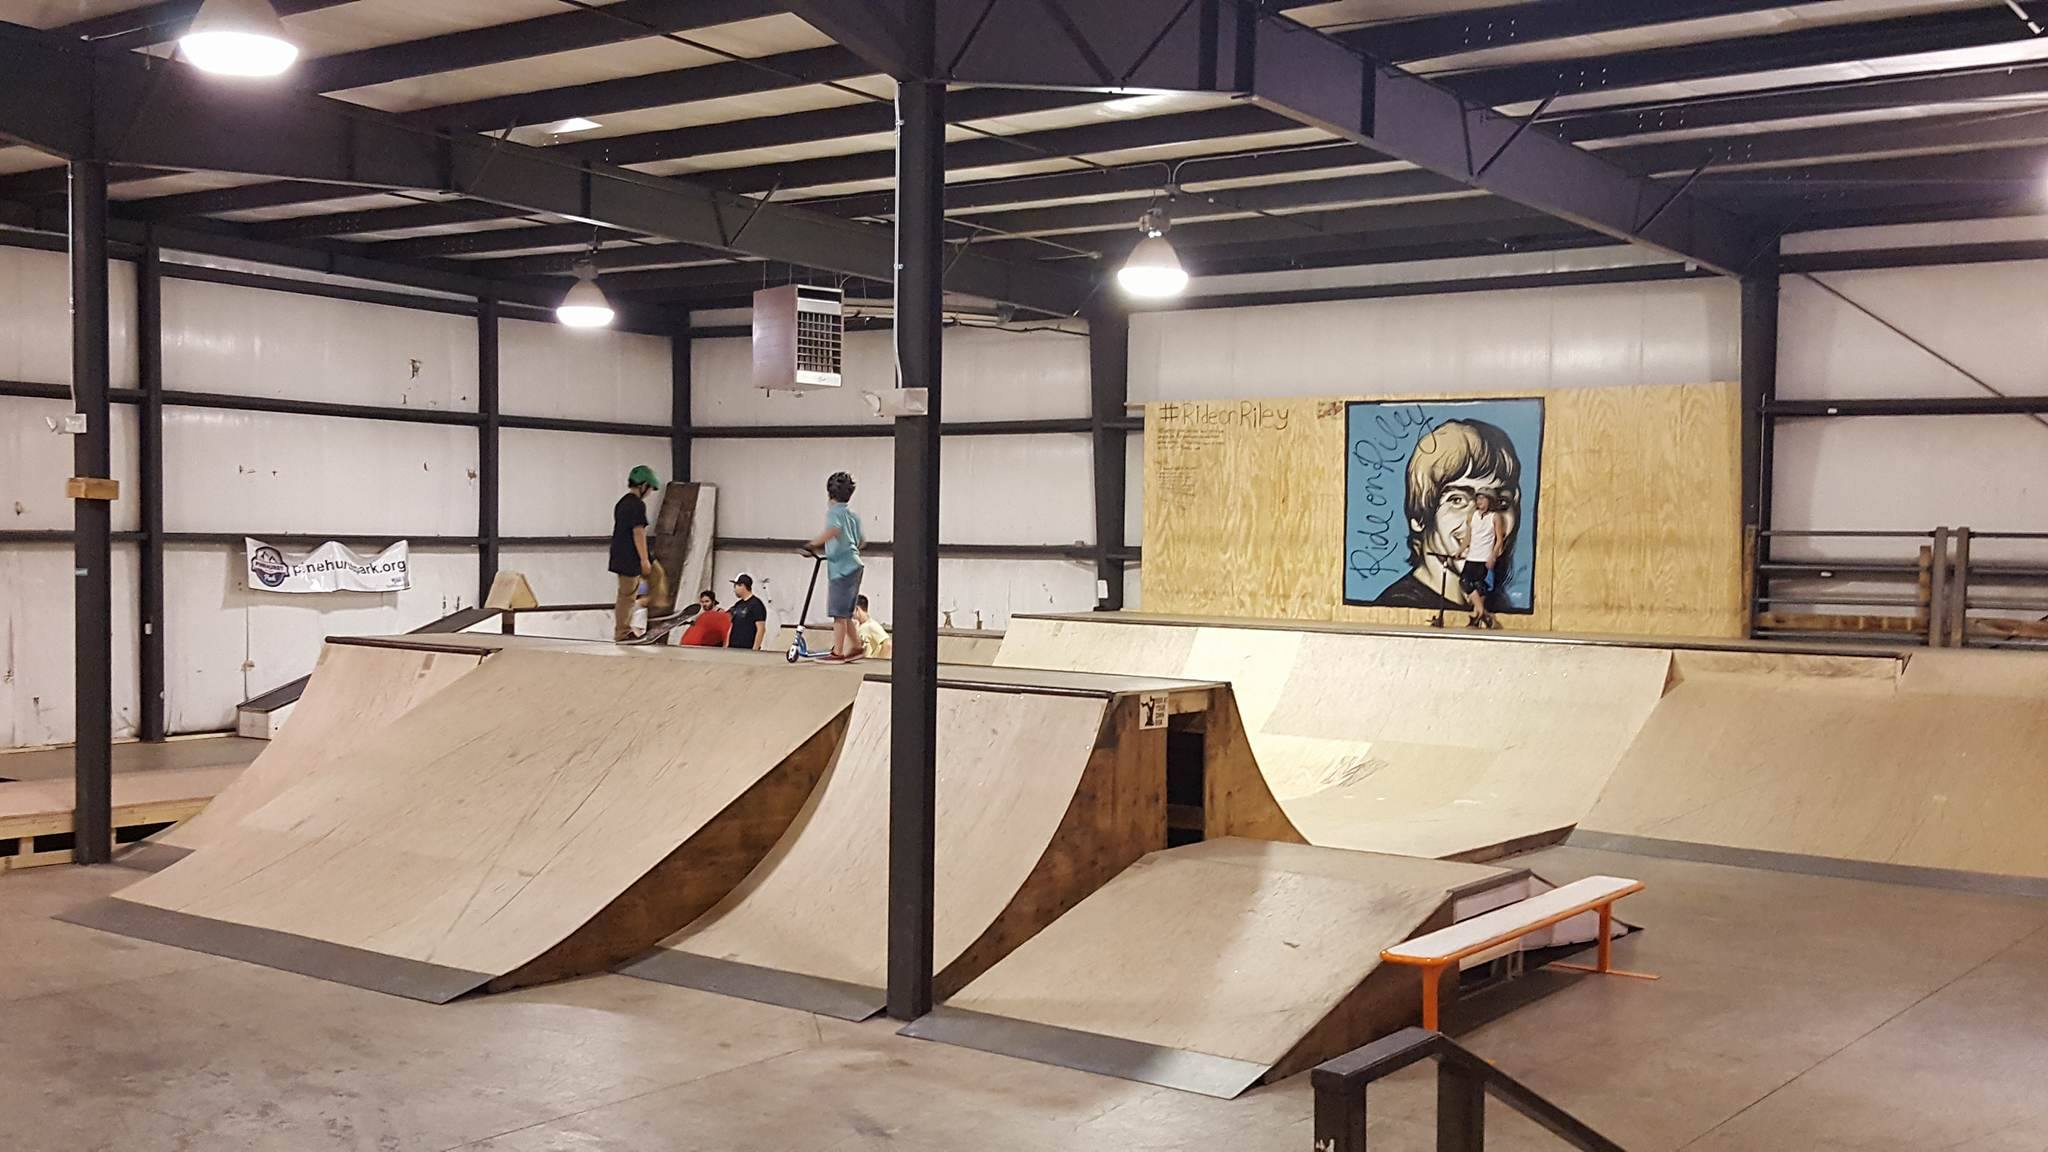 Urban Roots skatepark looks to continue growth